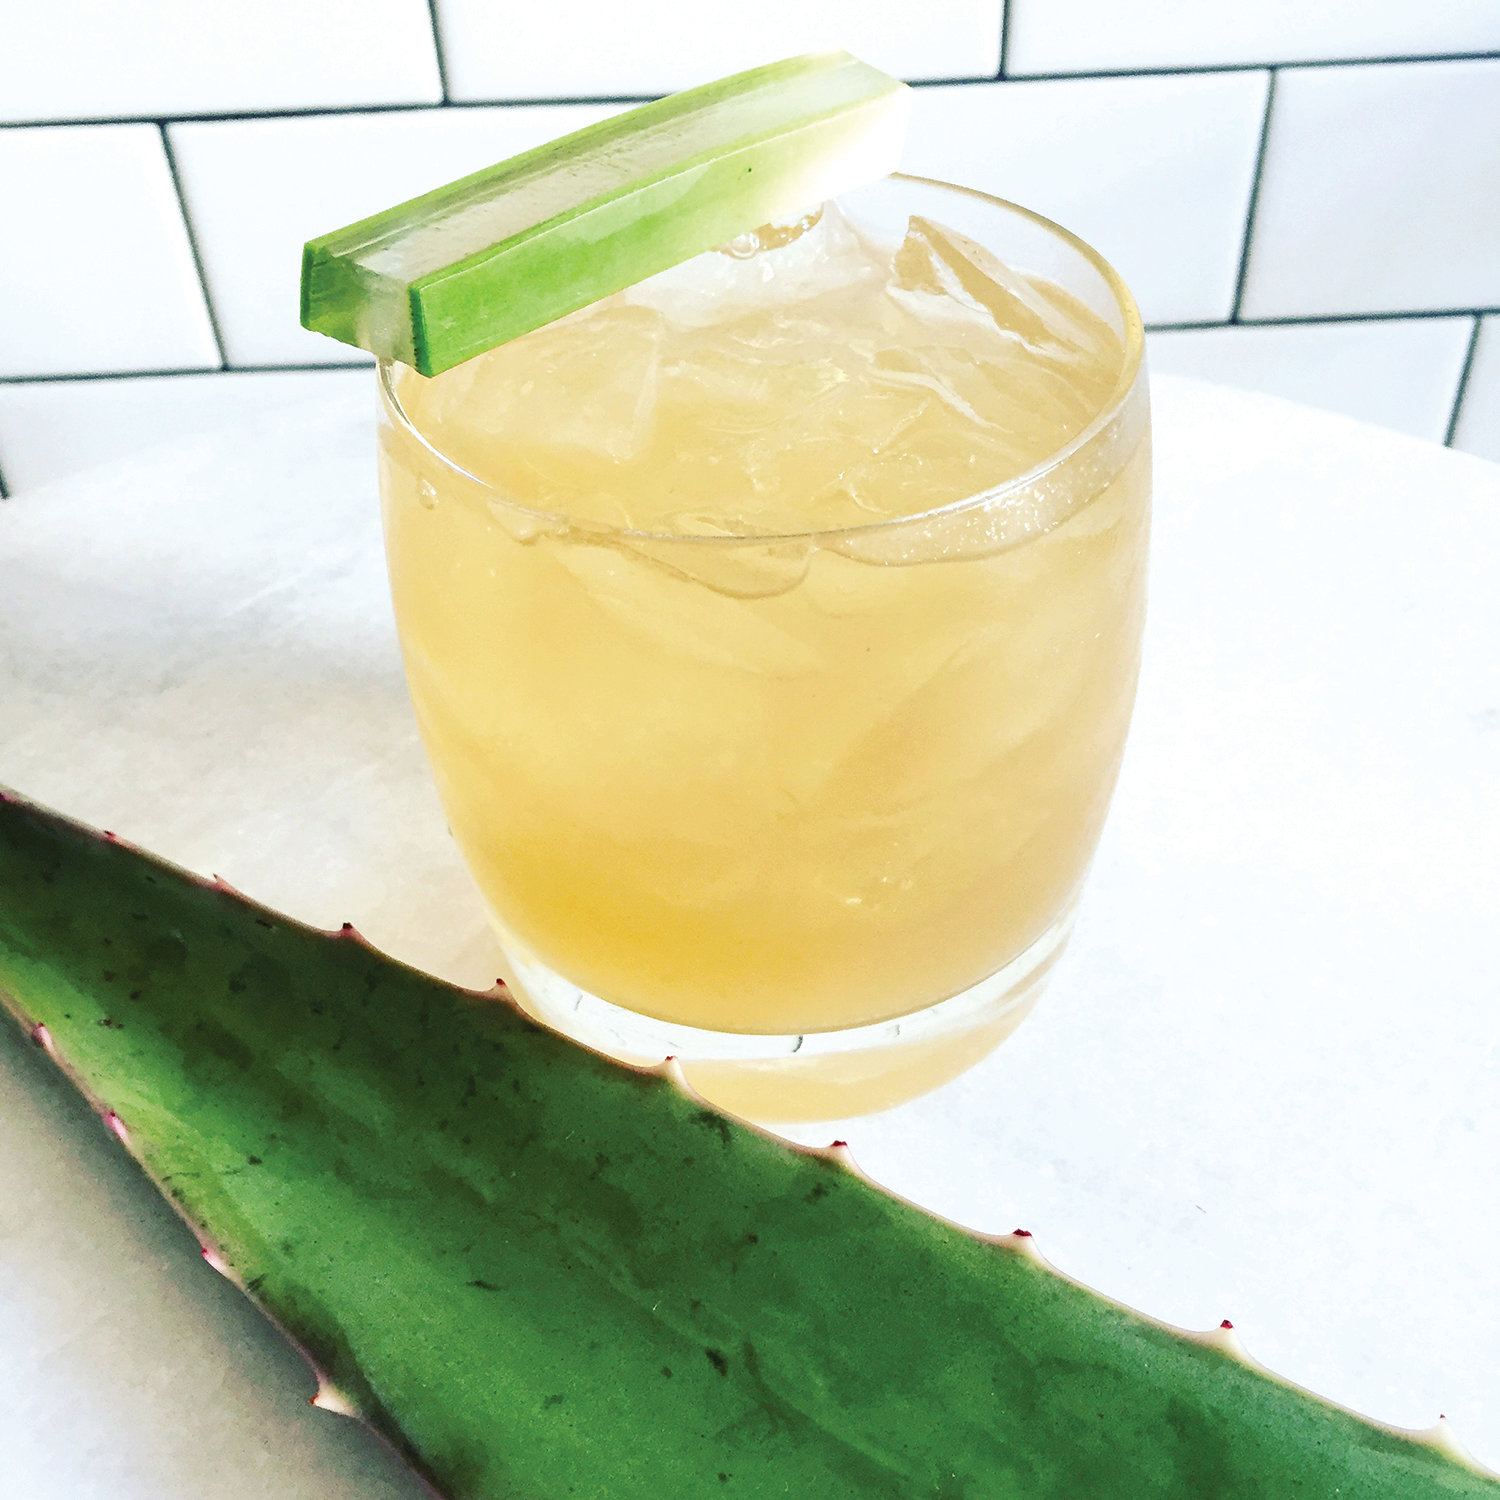 A tequila-based cocktail made with agave, aloe and tamarind.